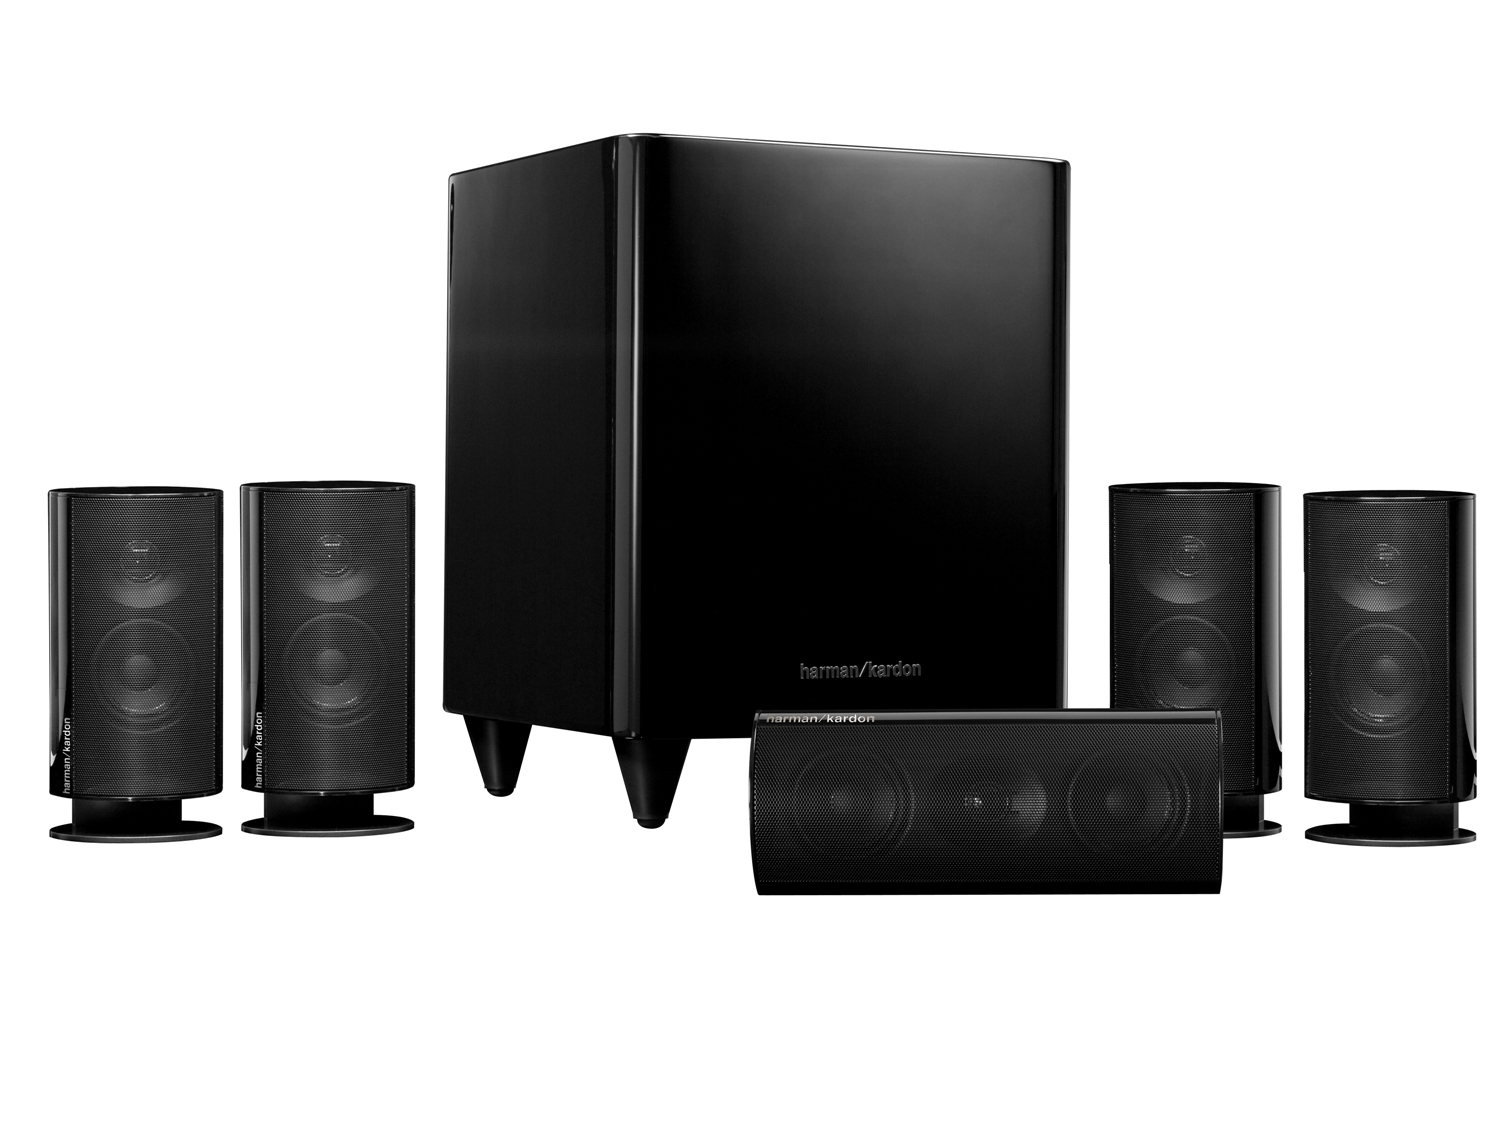 bestbuy harman kardon home theater speaker system reviews. Black Bedroom Furniture Sets. Home Design Ideas